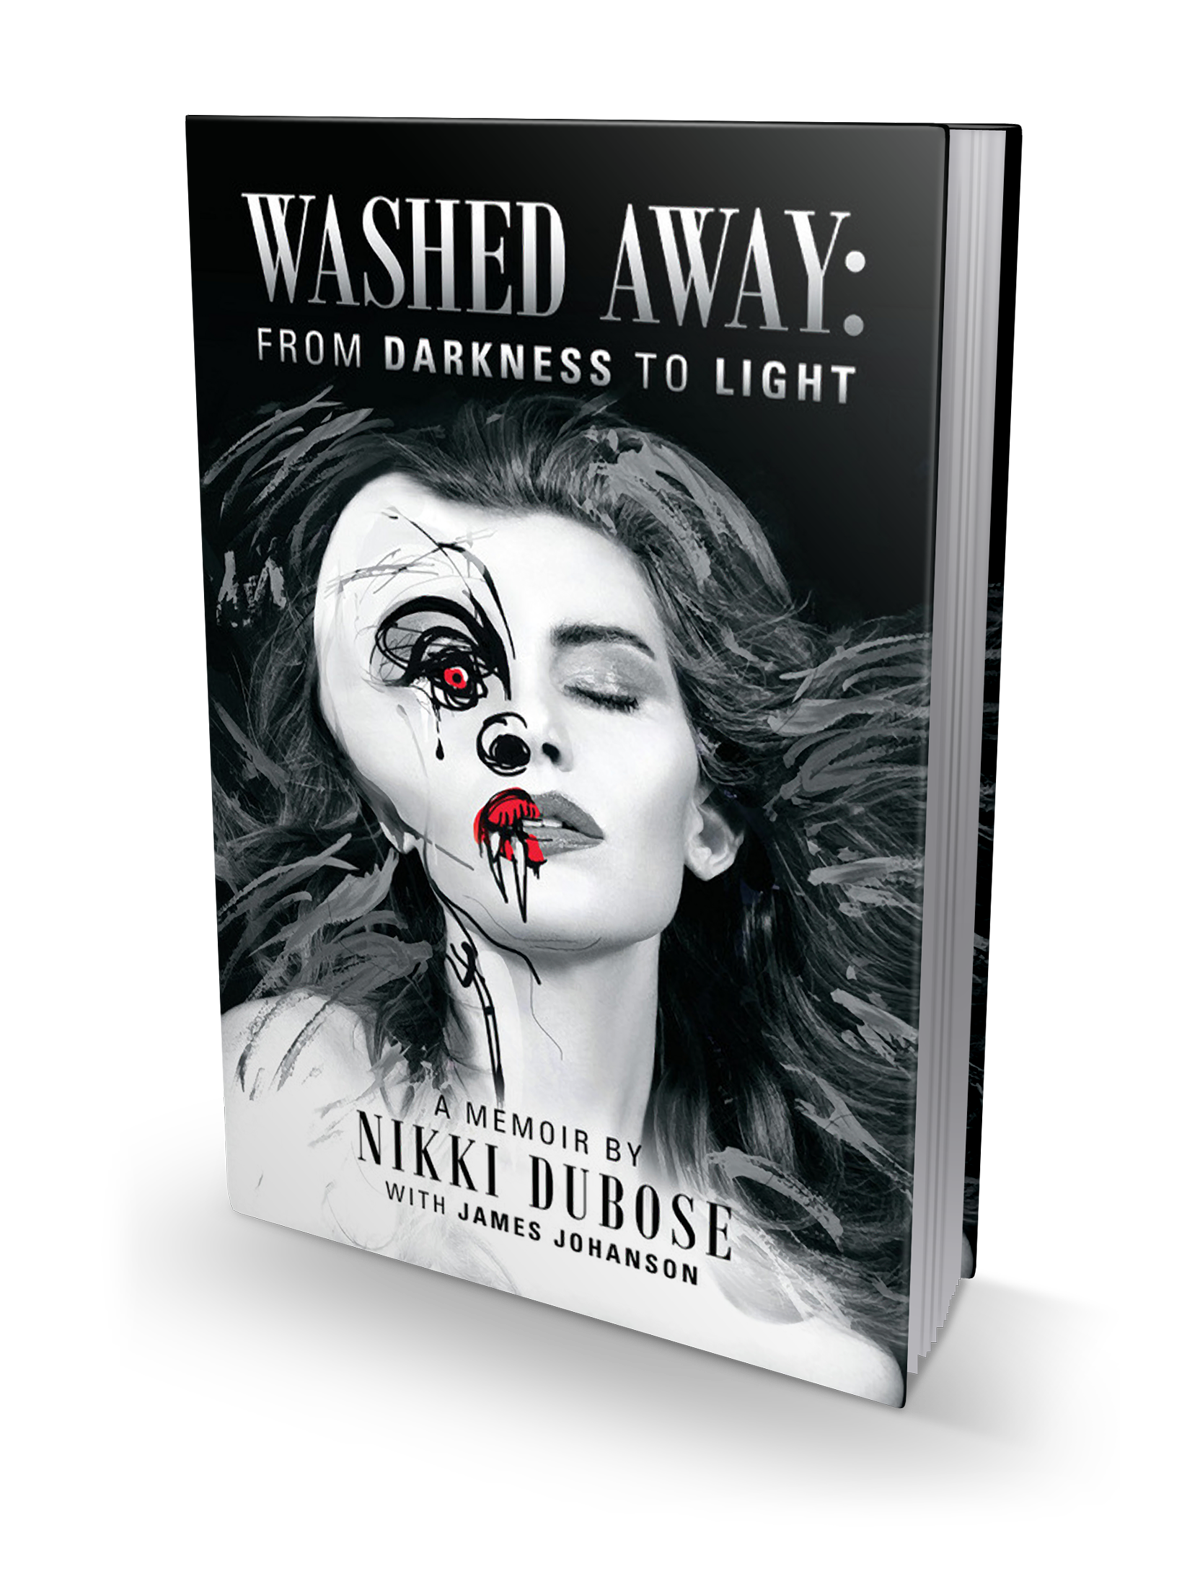 Washed Away From Darkness to Light Nikki DuBose